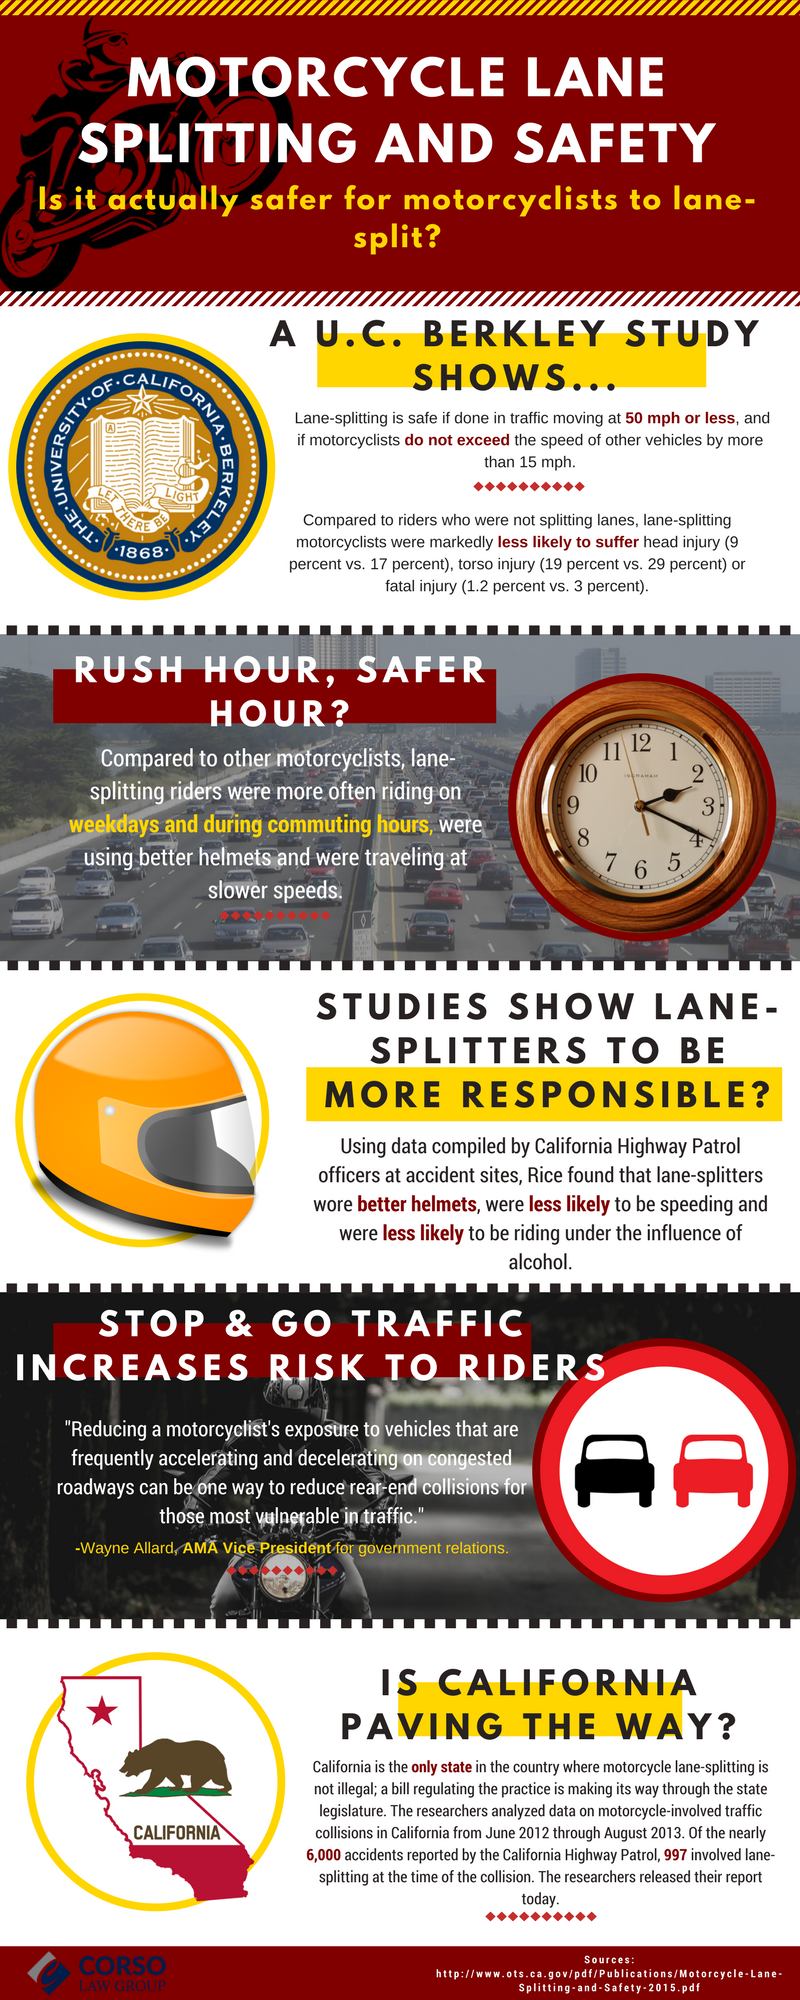 Arizona motorcycle lane splitting safety infographic